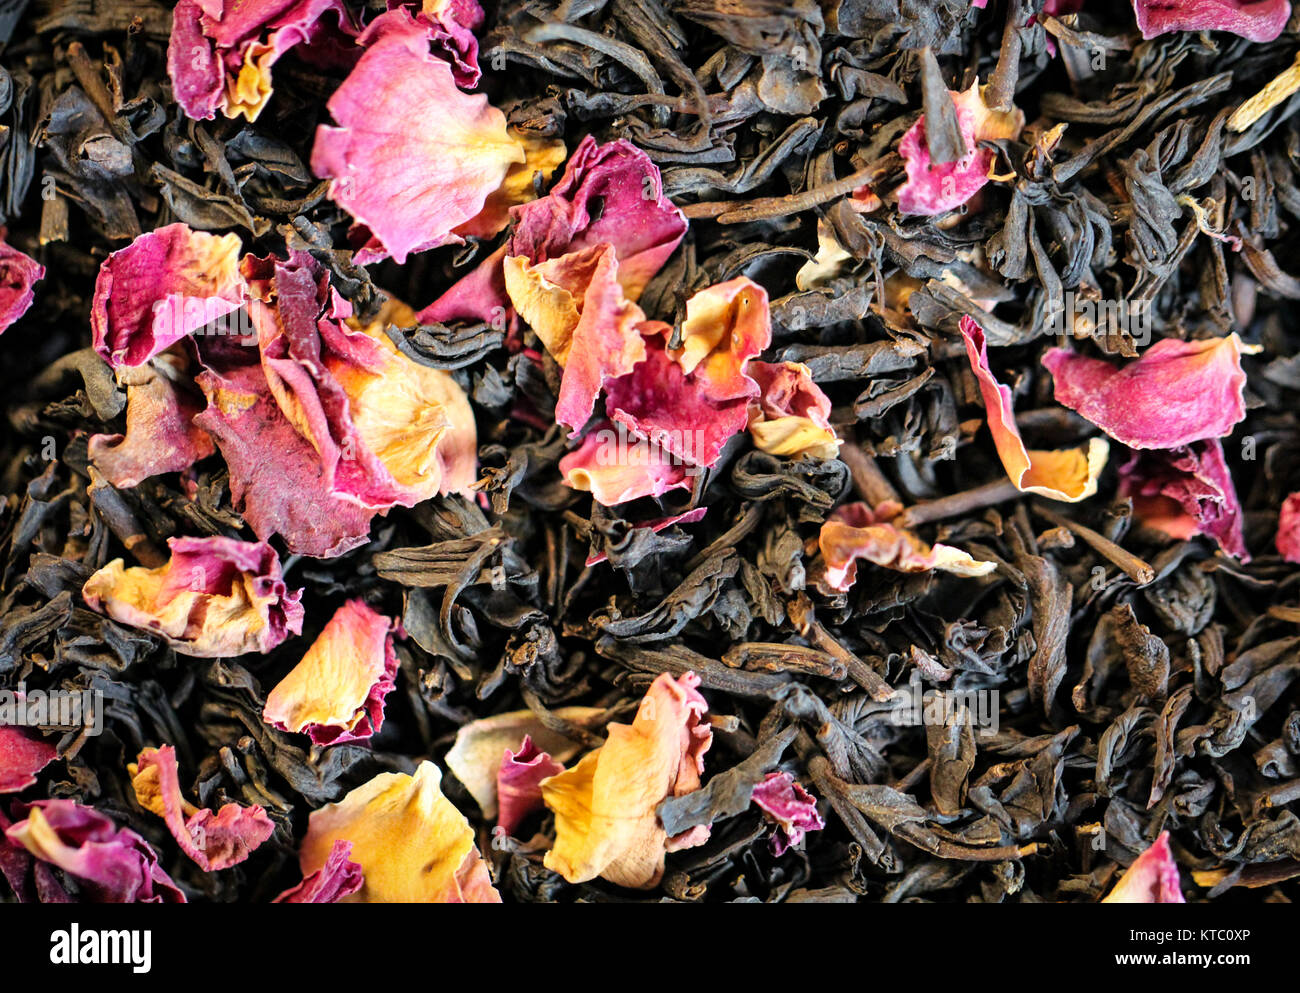 black tea with rose petals,relaxation,enjoyment - Stock Image